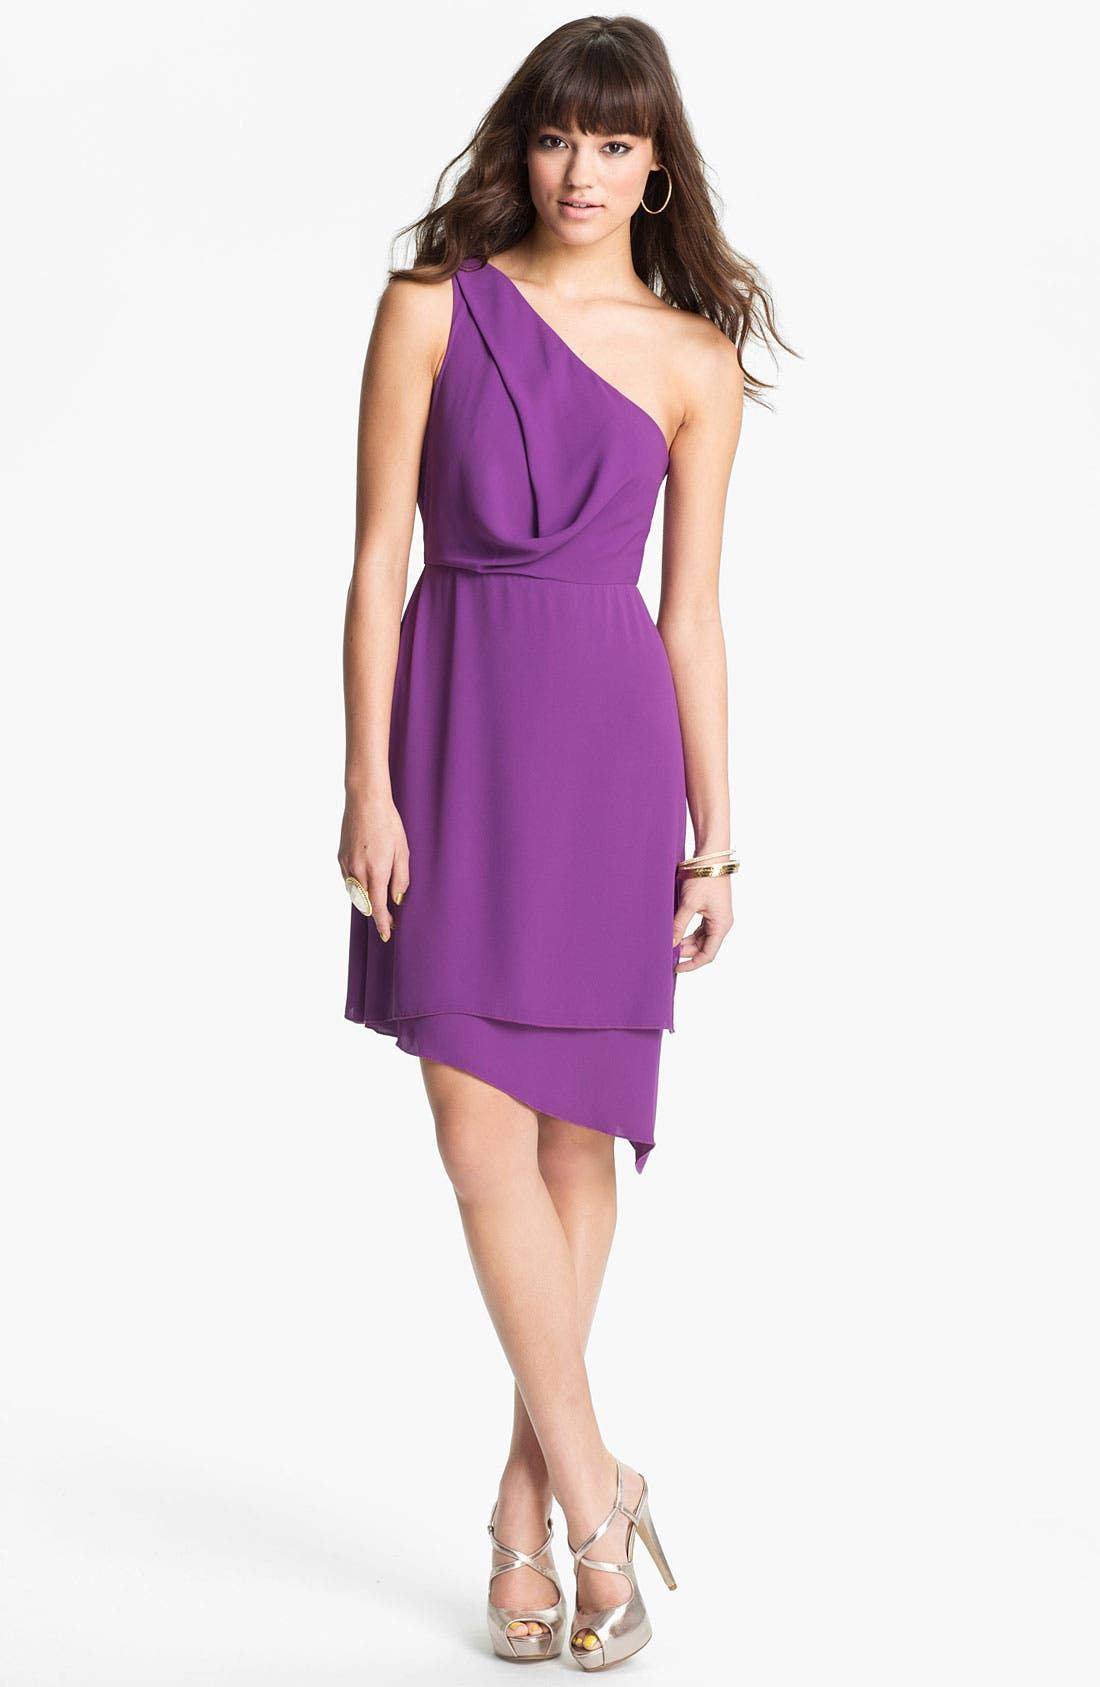 Alternate Image 1 Selected - BCBGMAXAZRIA One Shoulder Asymmetrical Chiffon Dress